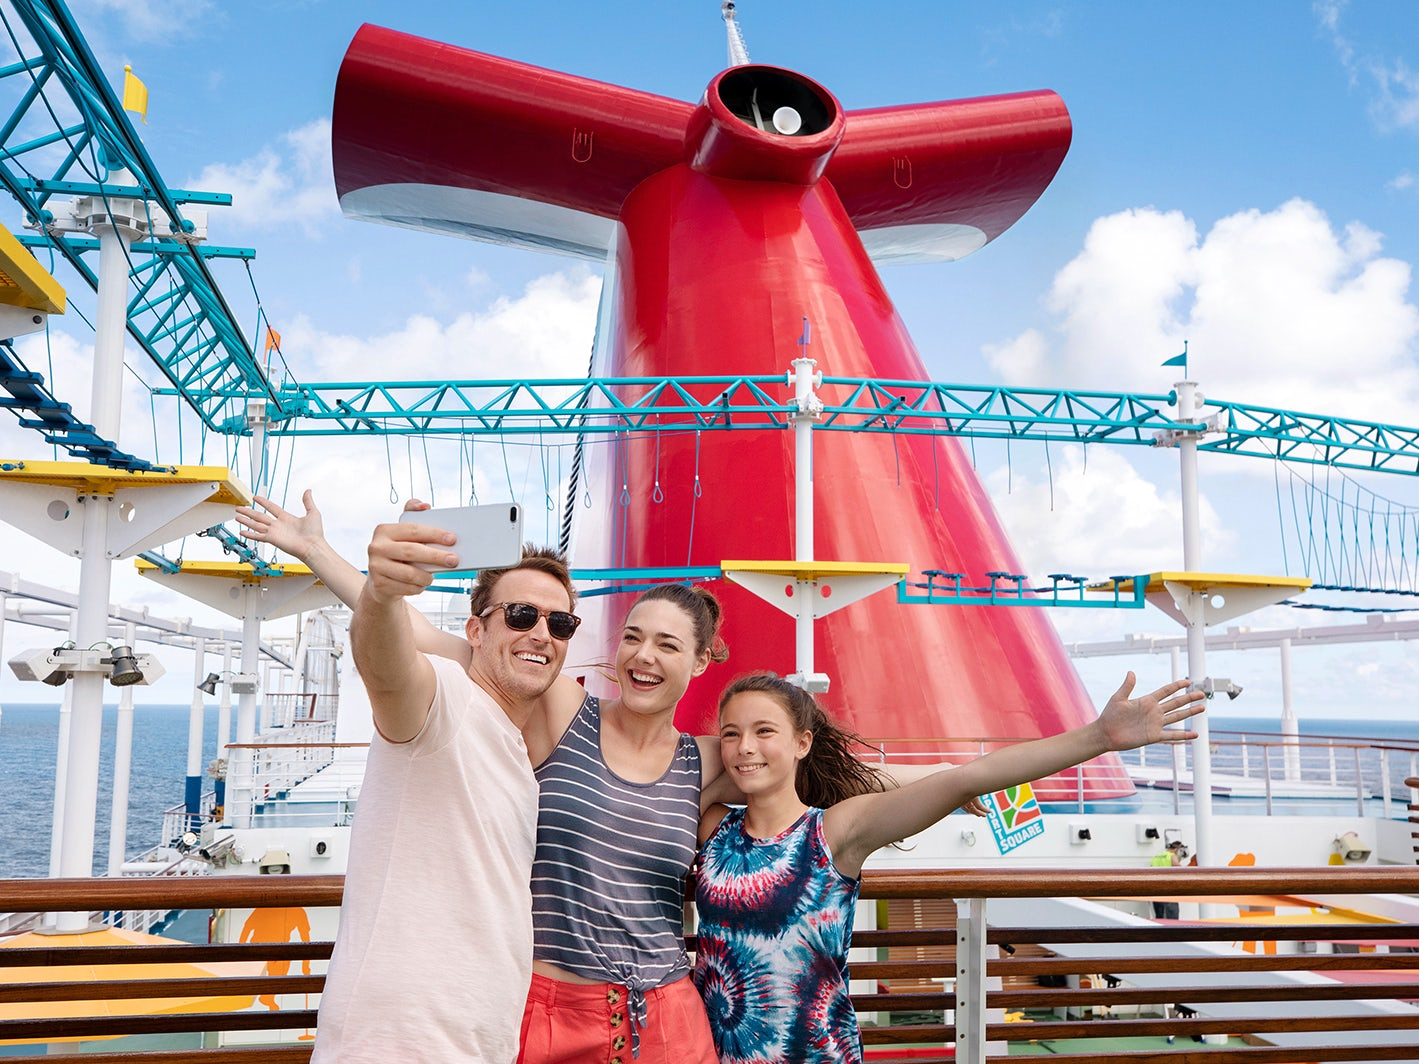 Carnival - Receive up to $50 to spend onboard!